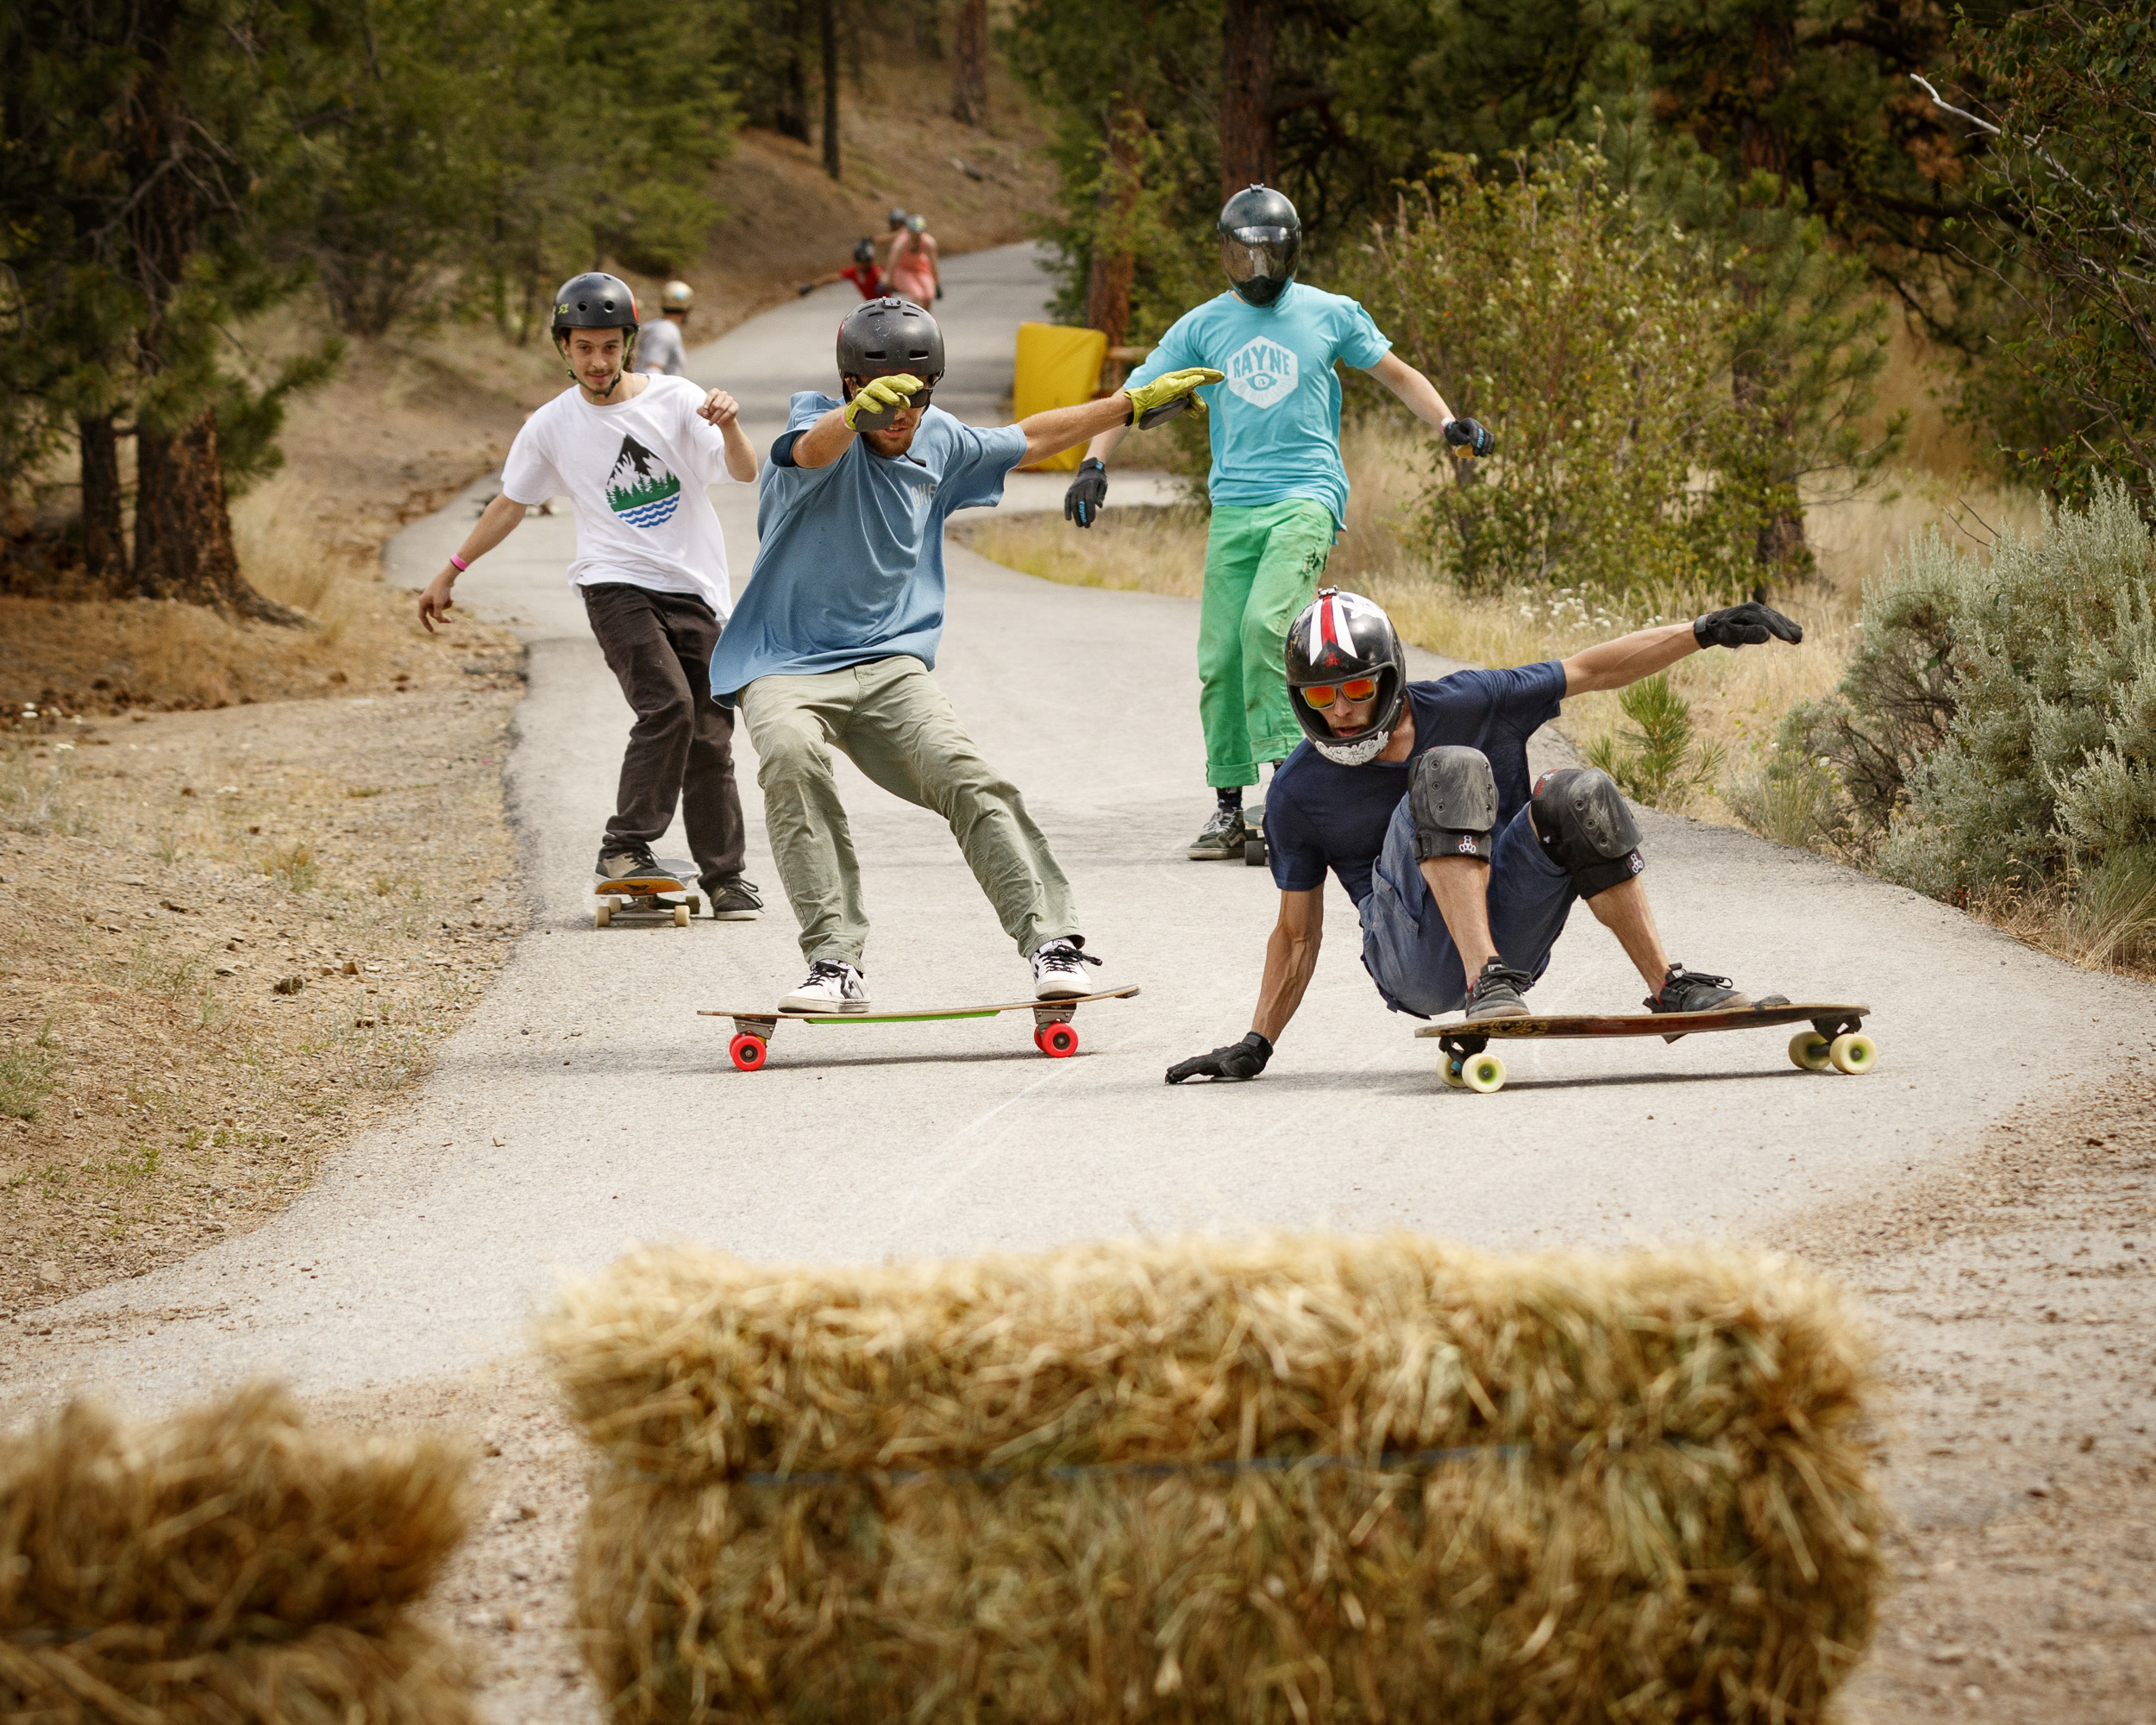 This scene is typical Giants Head: four skaters riding wildly different setups in completely different styles are all shutting down for the notorious Gravel Corner by the top of the hill.